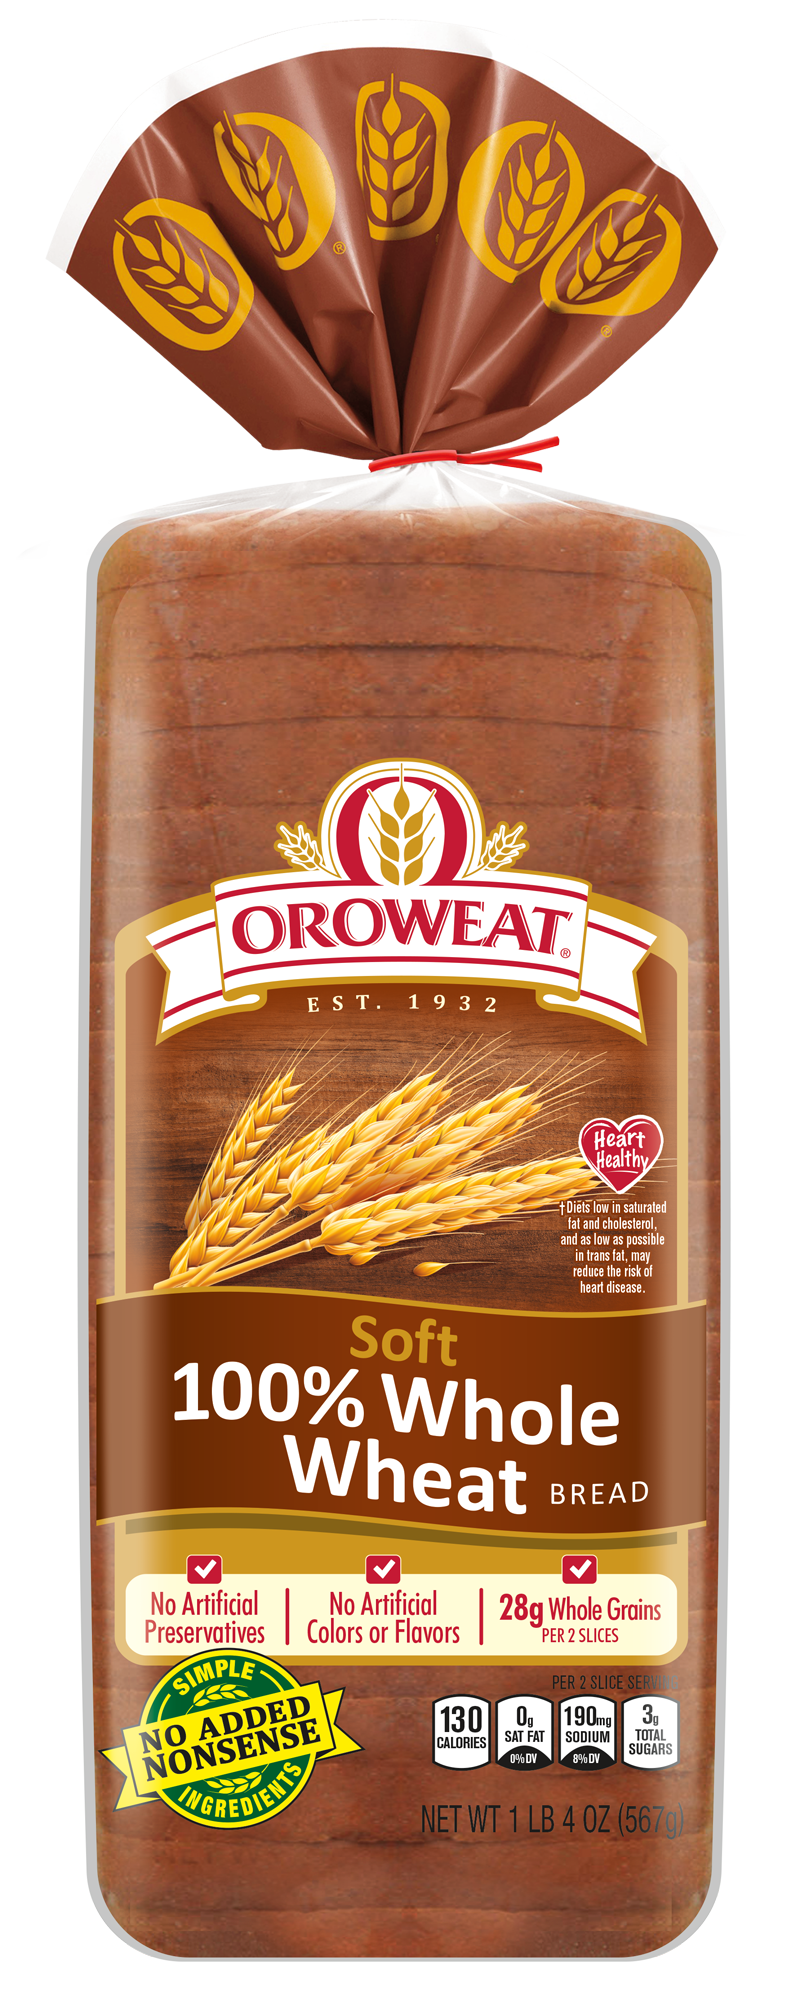 Oroweat Classic Soft 100% Whole Wheat Bread Package